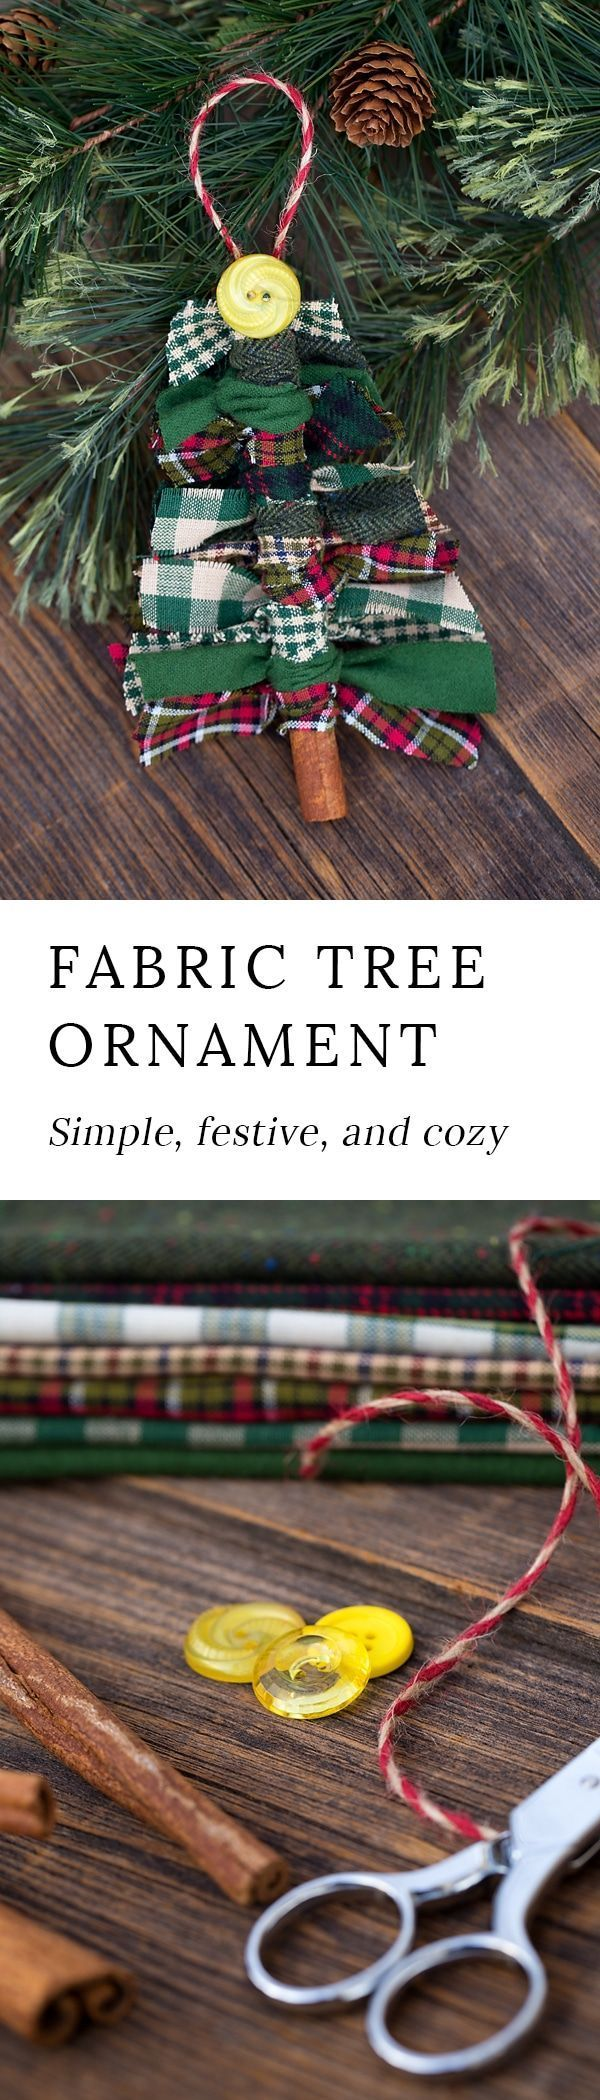 How to Make Scrap Fabric Tree Ornaments #scrapfabric